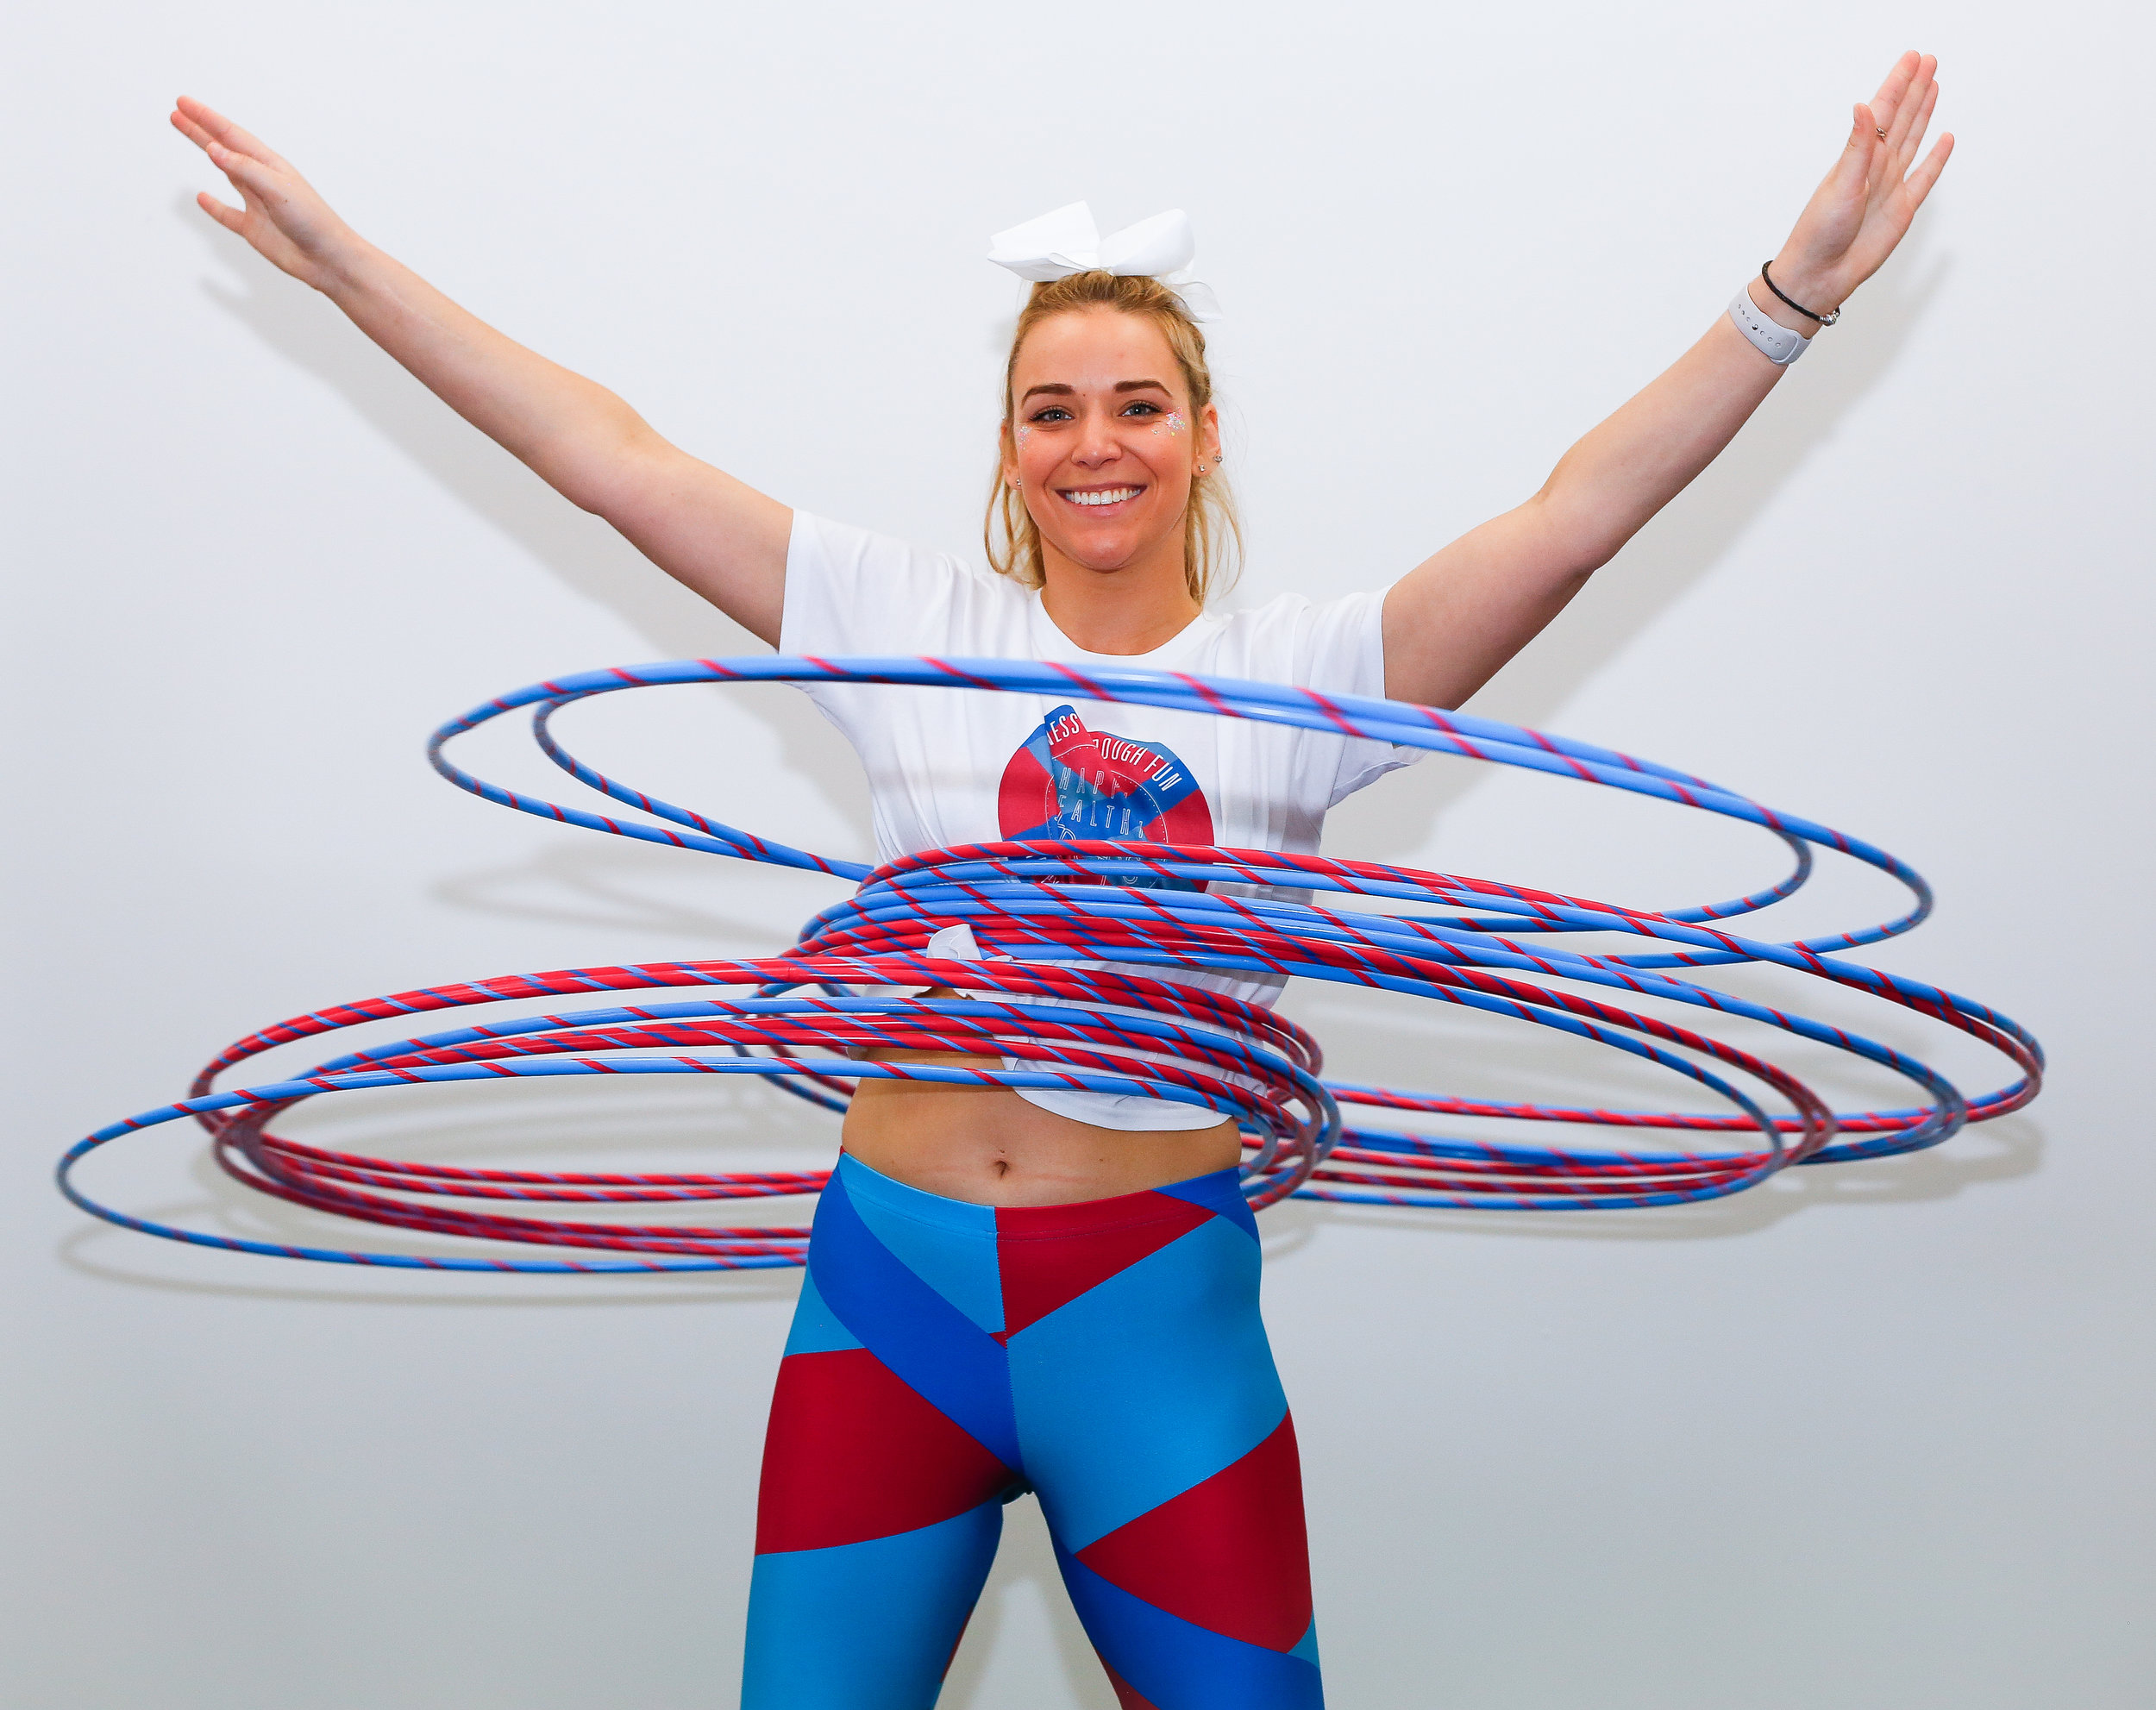 How many hoops? - Go to our instagram to guess how many hoops Kaitlyn spun??